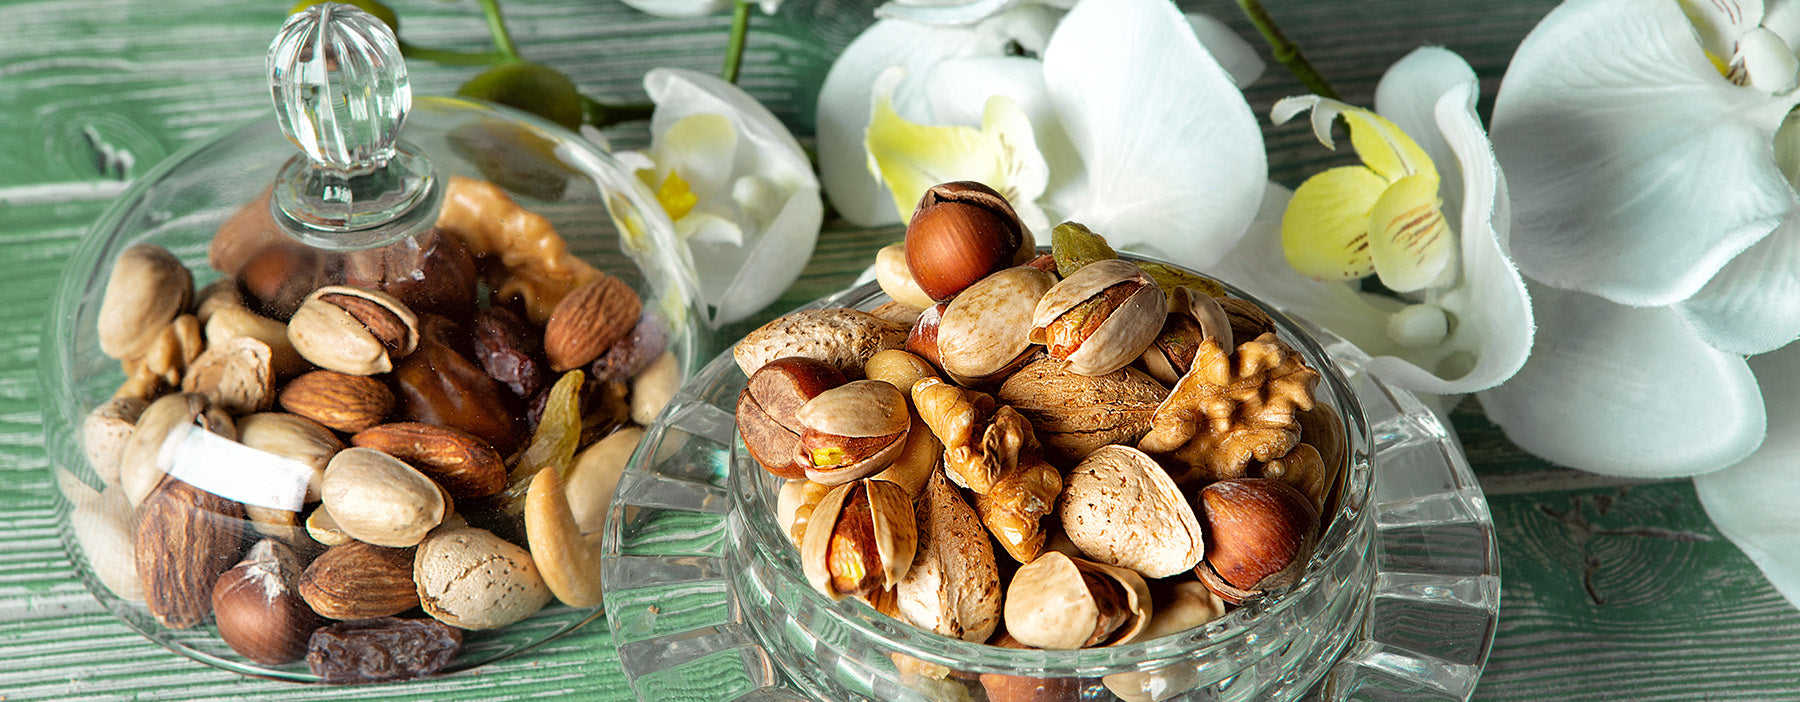 Finest Quality Dried Nuts and Fruits and Pastries from Iran, Turkey and Azerbaijan